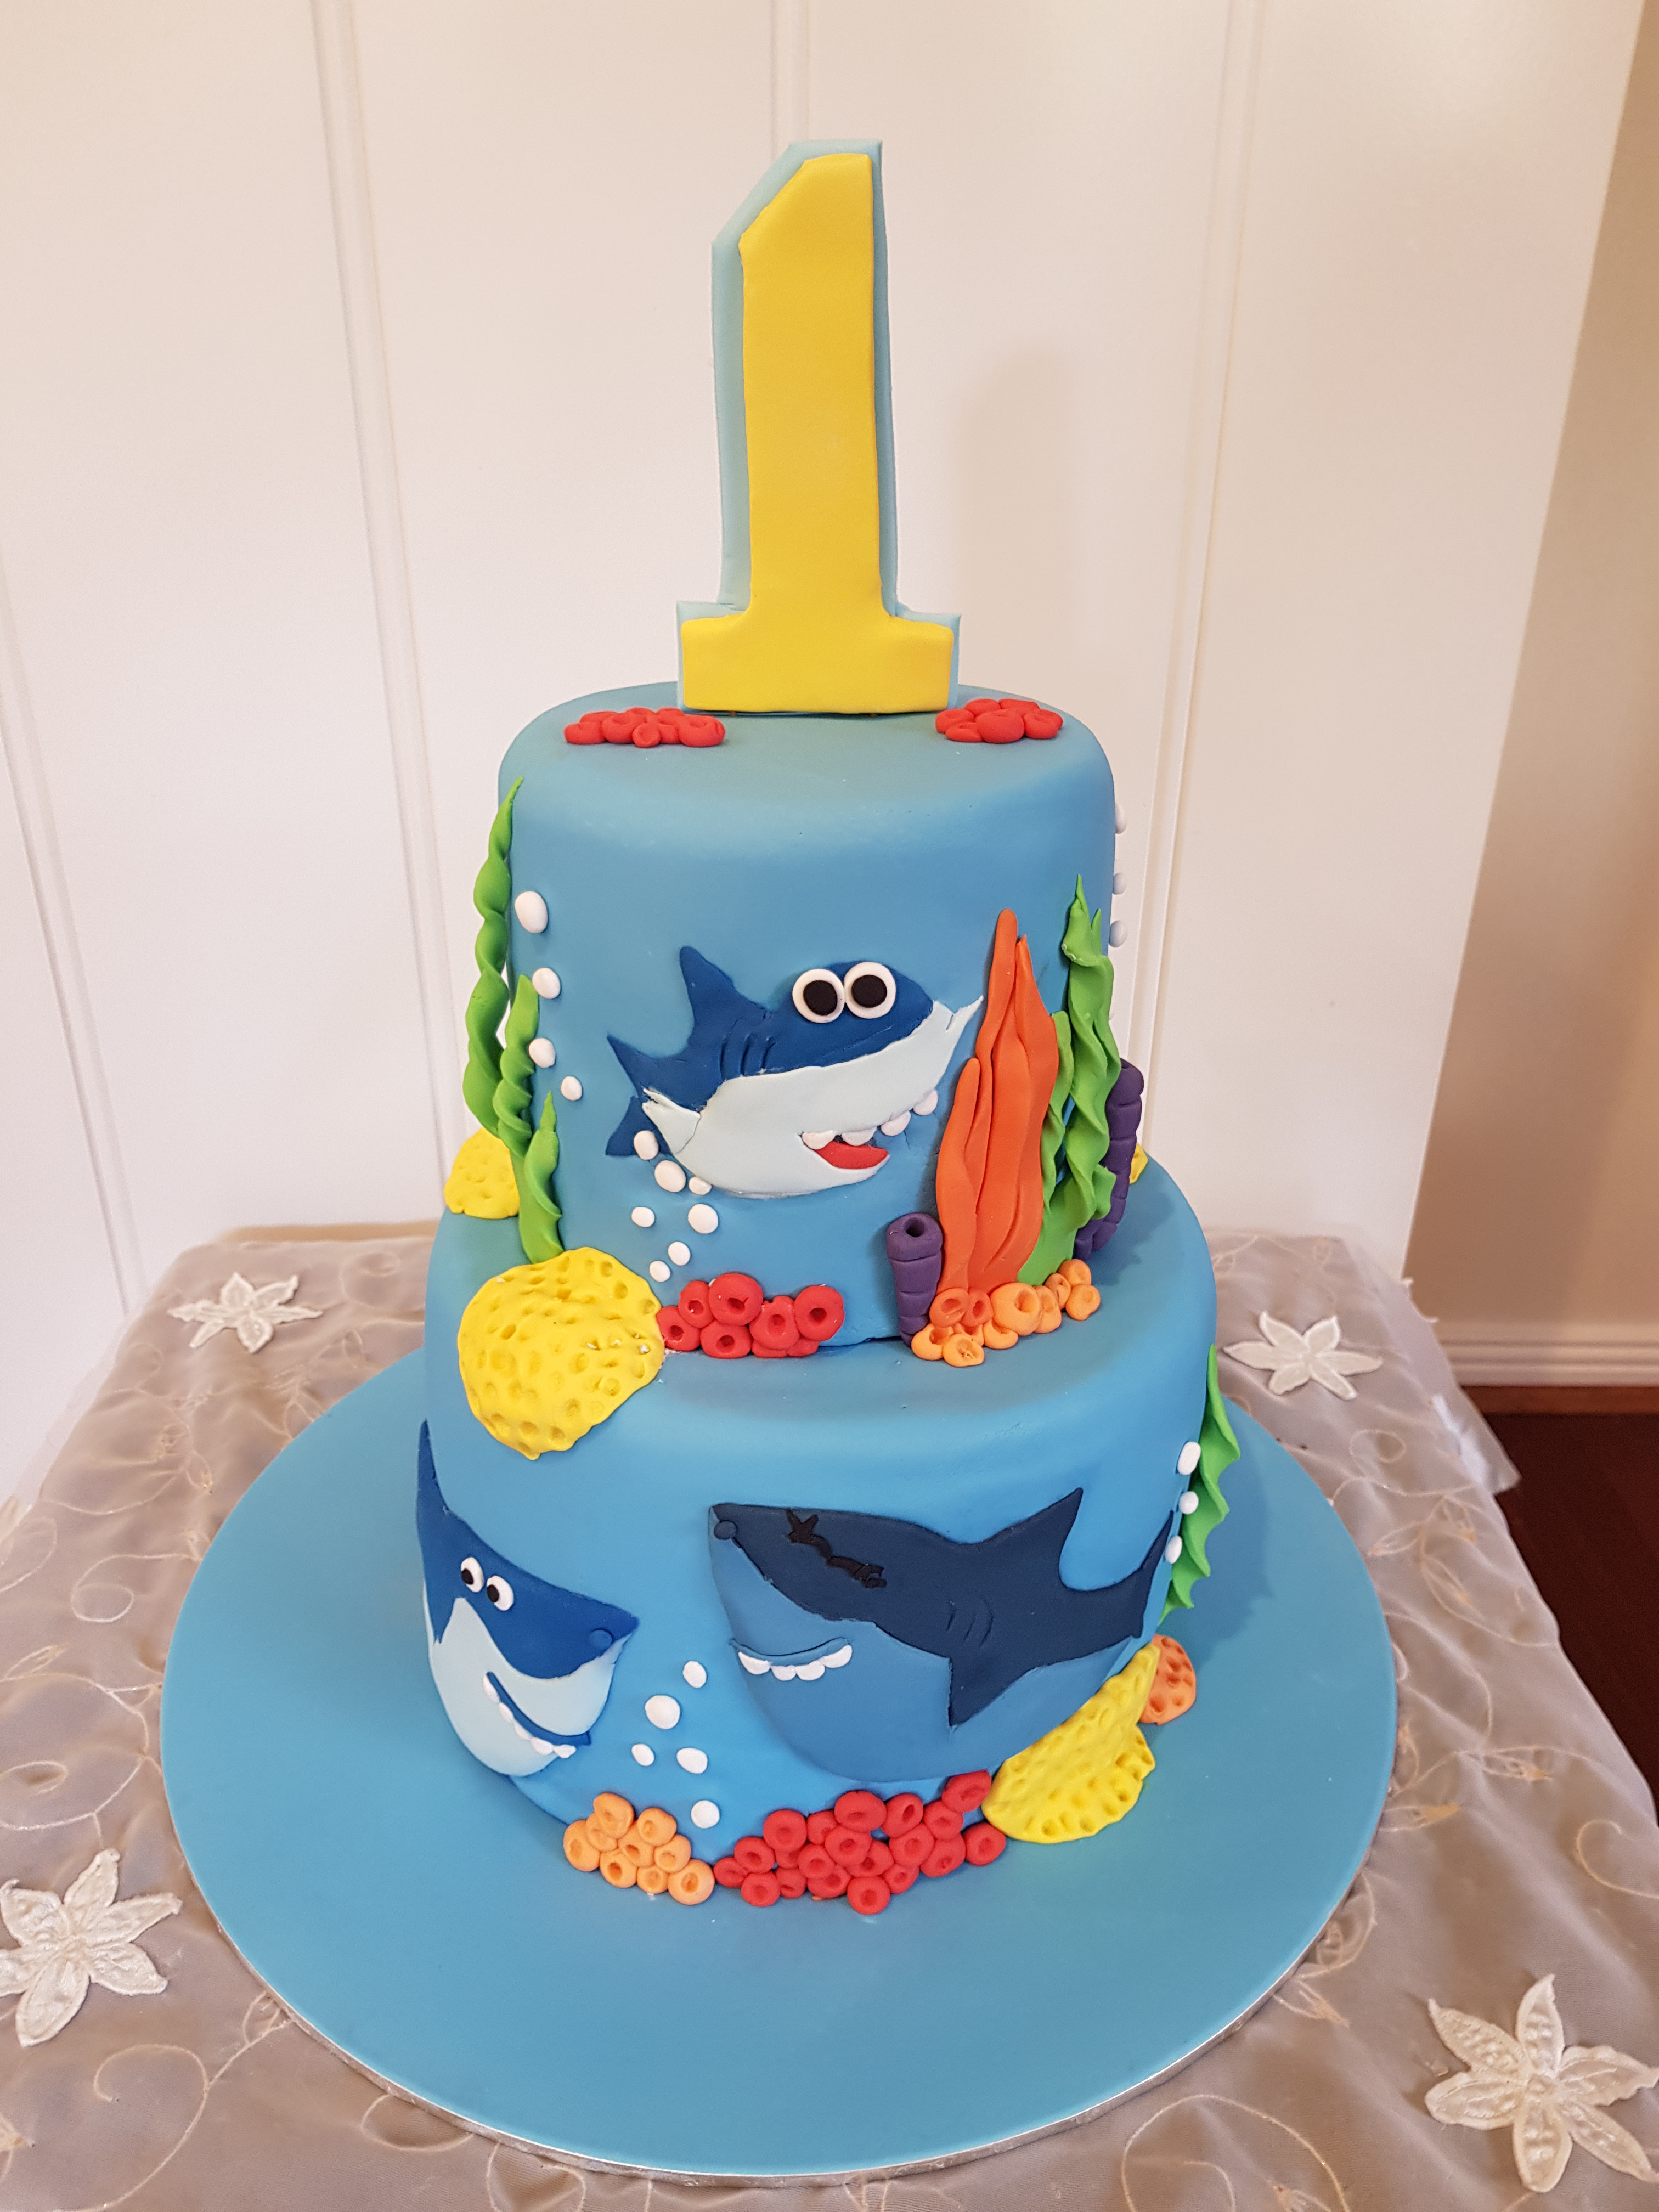 Baby Shark cake from $270